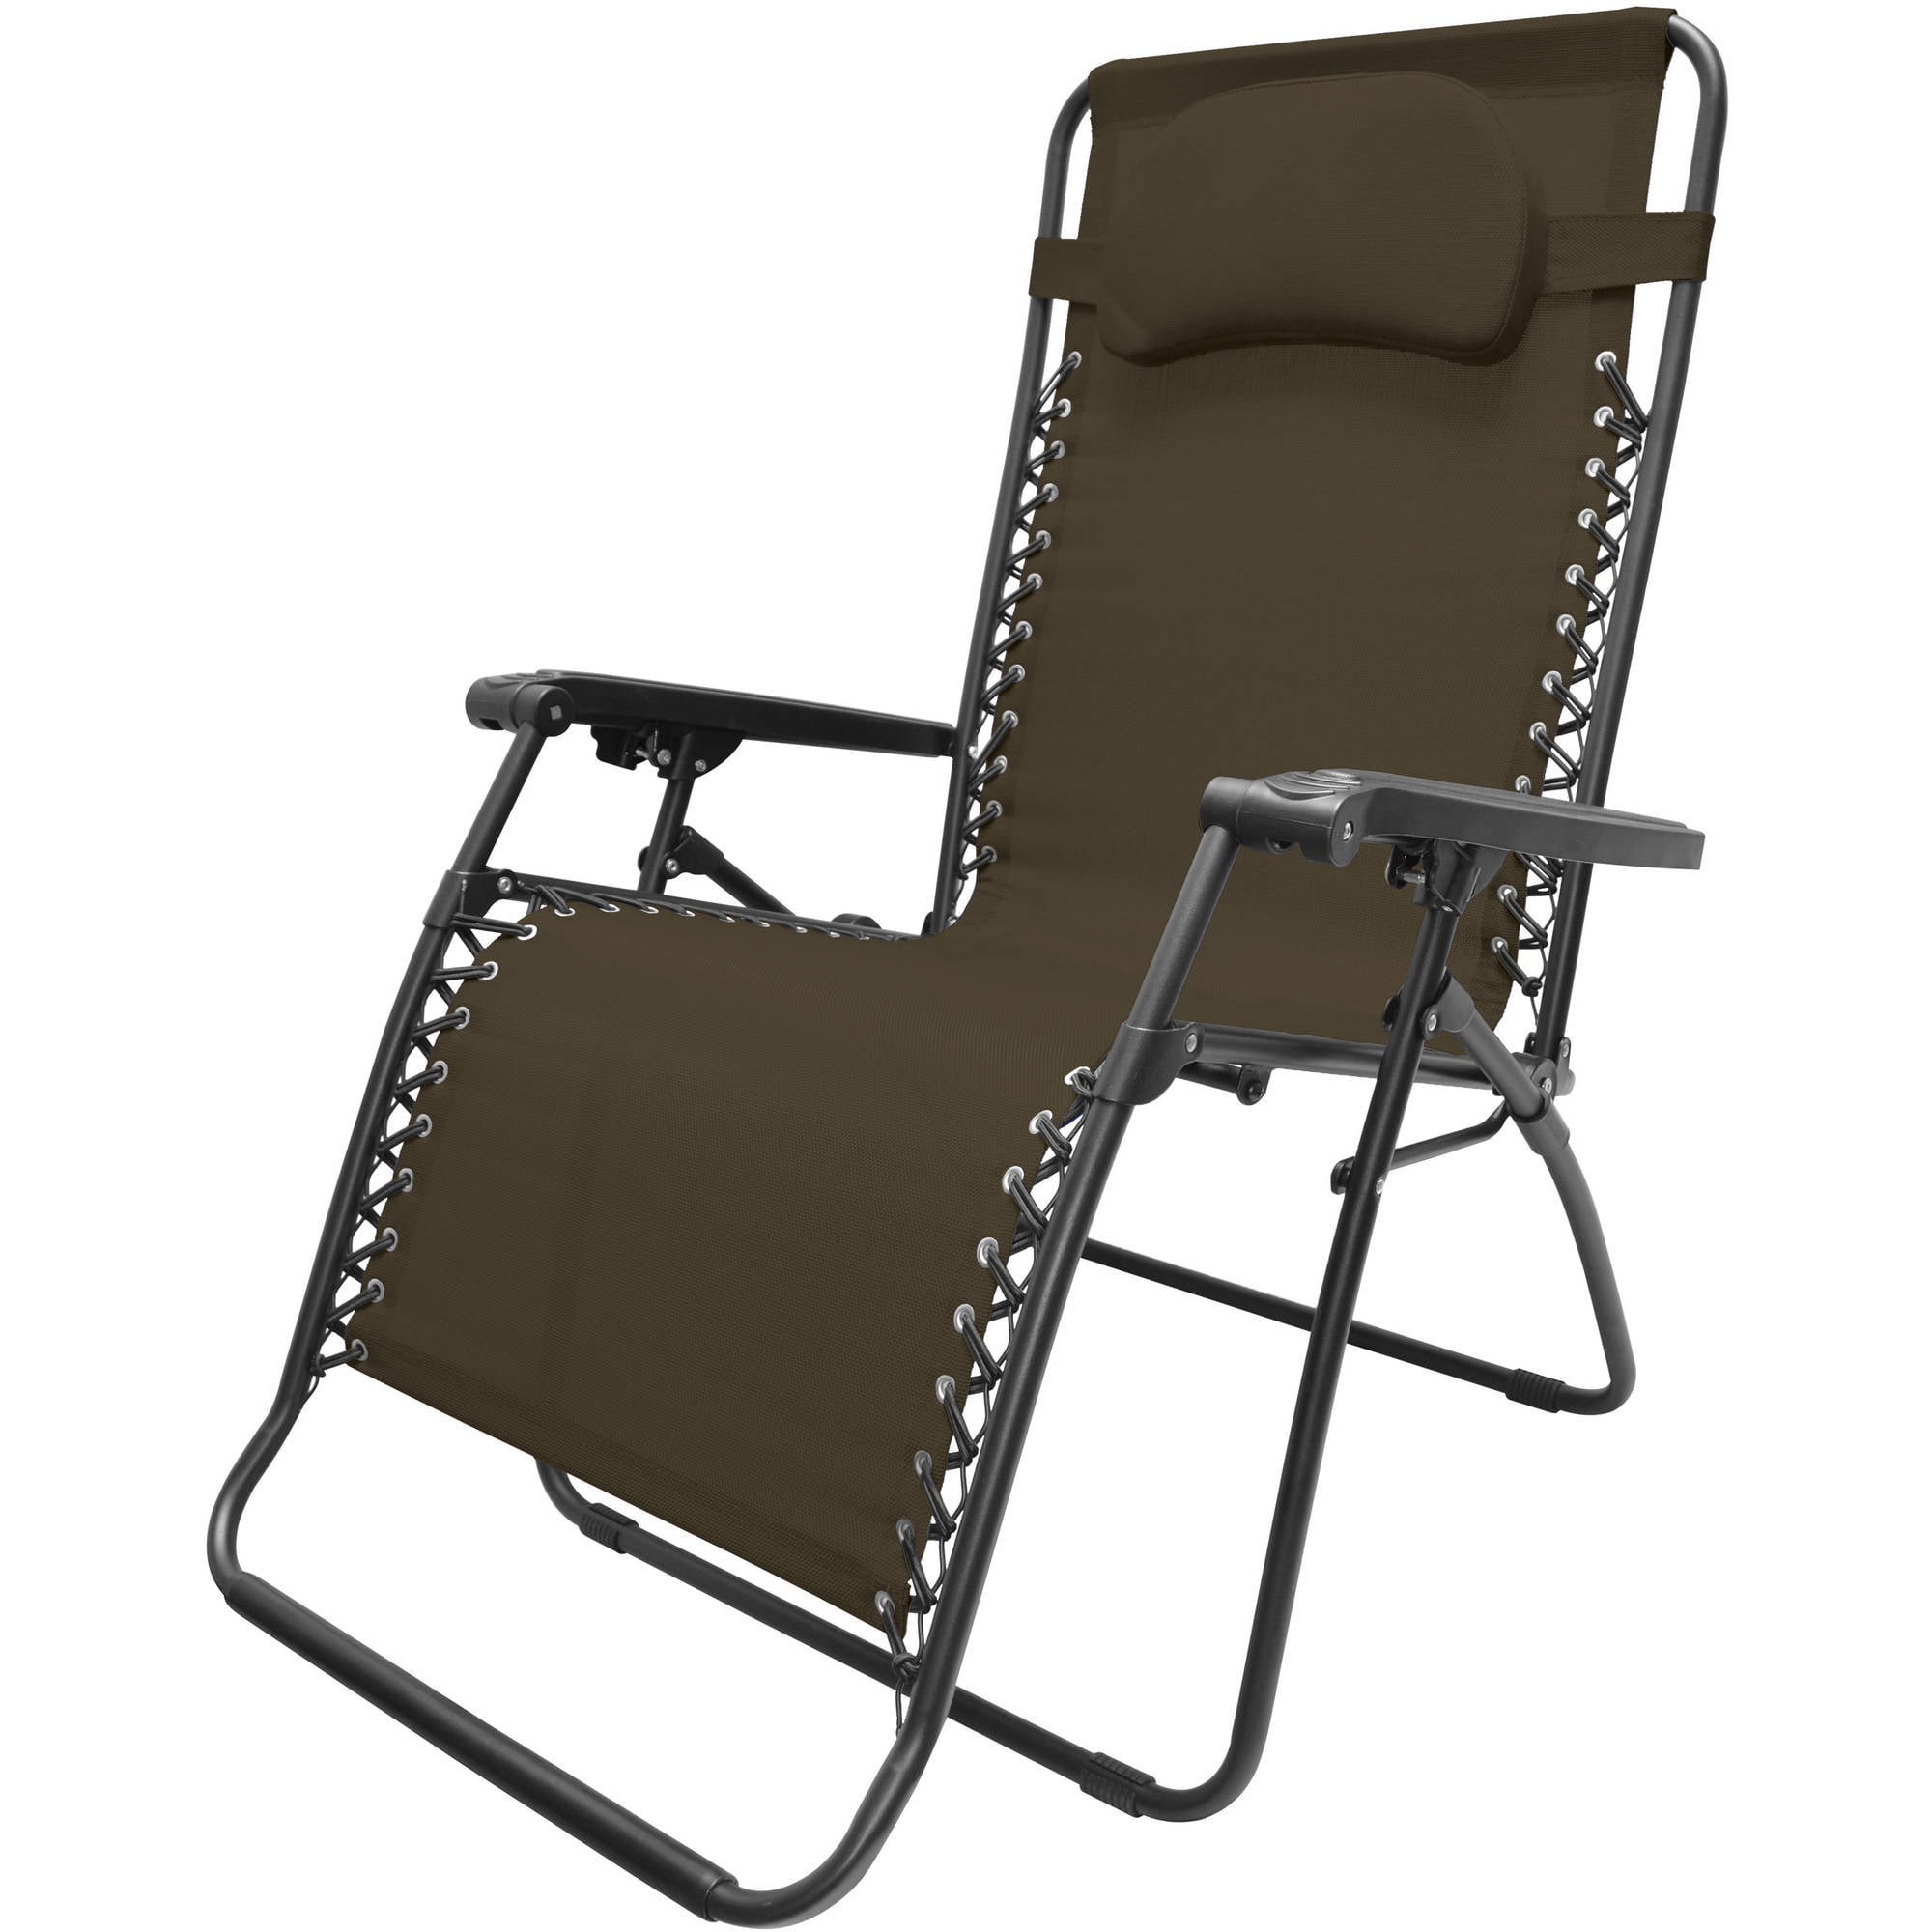 caravan sports oversized infinity zero gravity chair brown